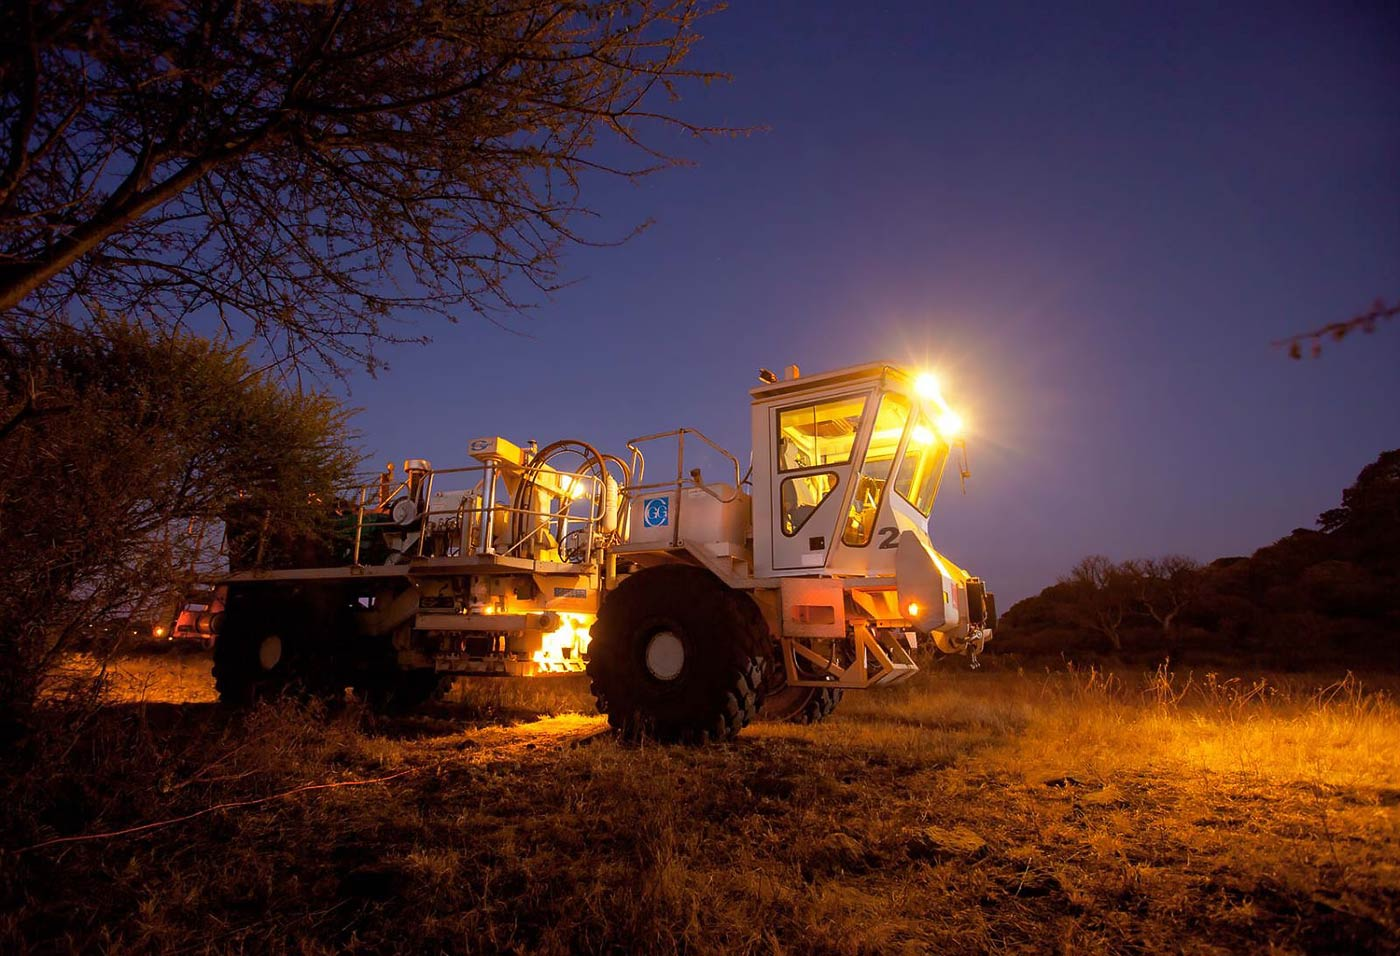 Seismic exploration thumper truck in the field at night - mining equipment photograph